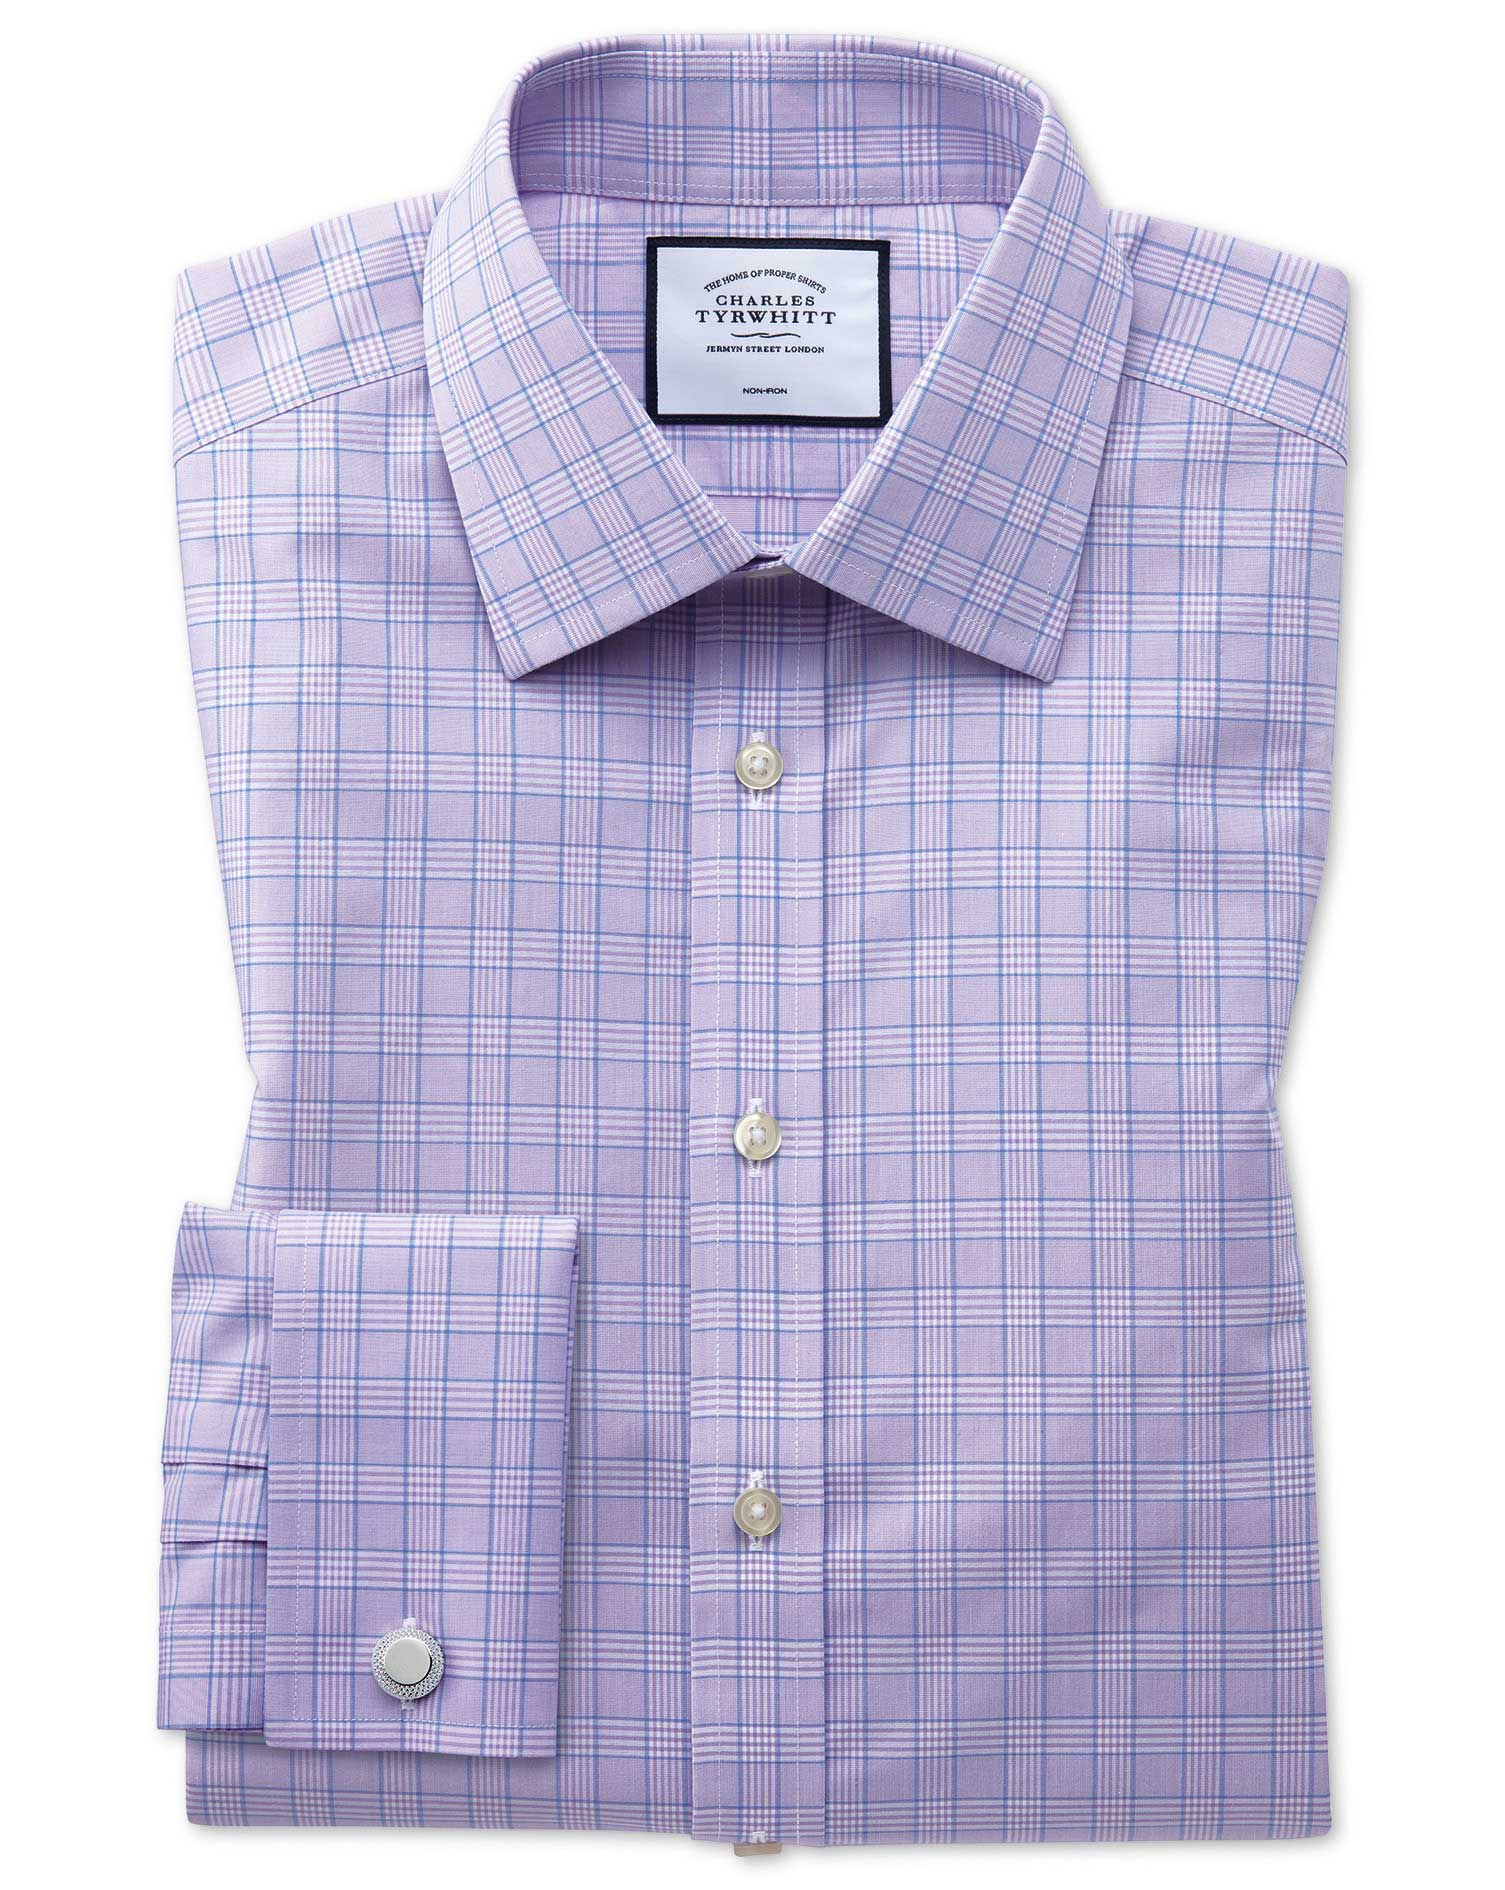 Classic Fit Non-Iron Lilac and Blue Prince Of Wales Check Cotton Formal Shirt Double Cuff Size 17.5/